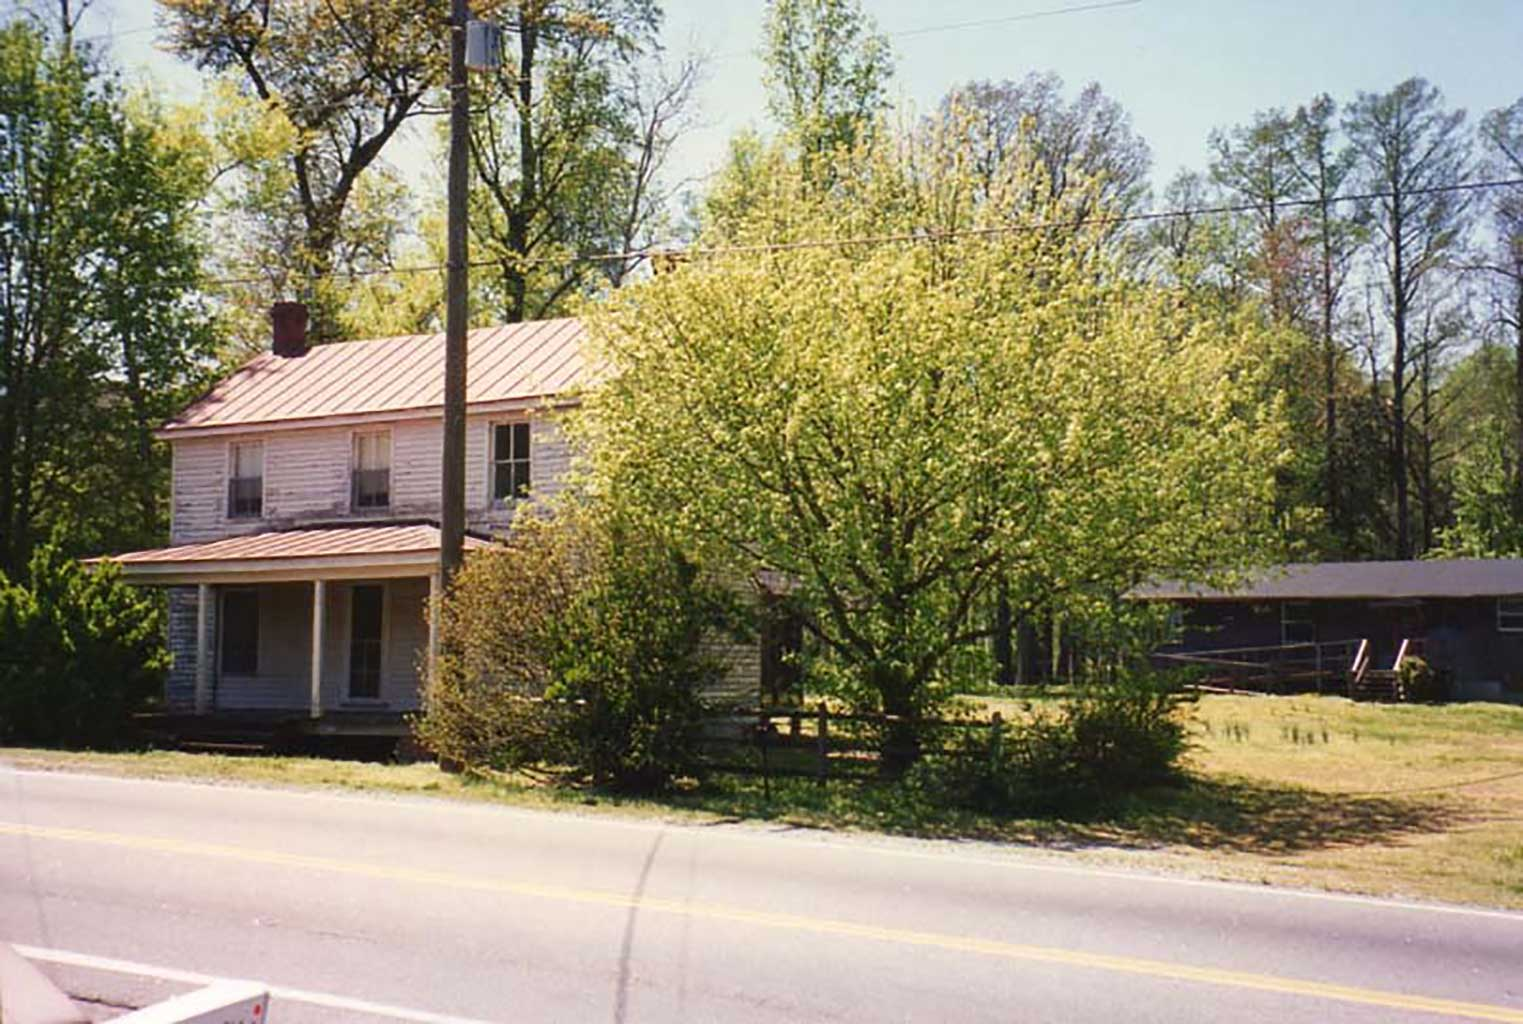 doyle-home-with-home-in-background-on-foundation-of-uncle-matts-meat-house-img288